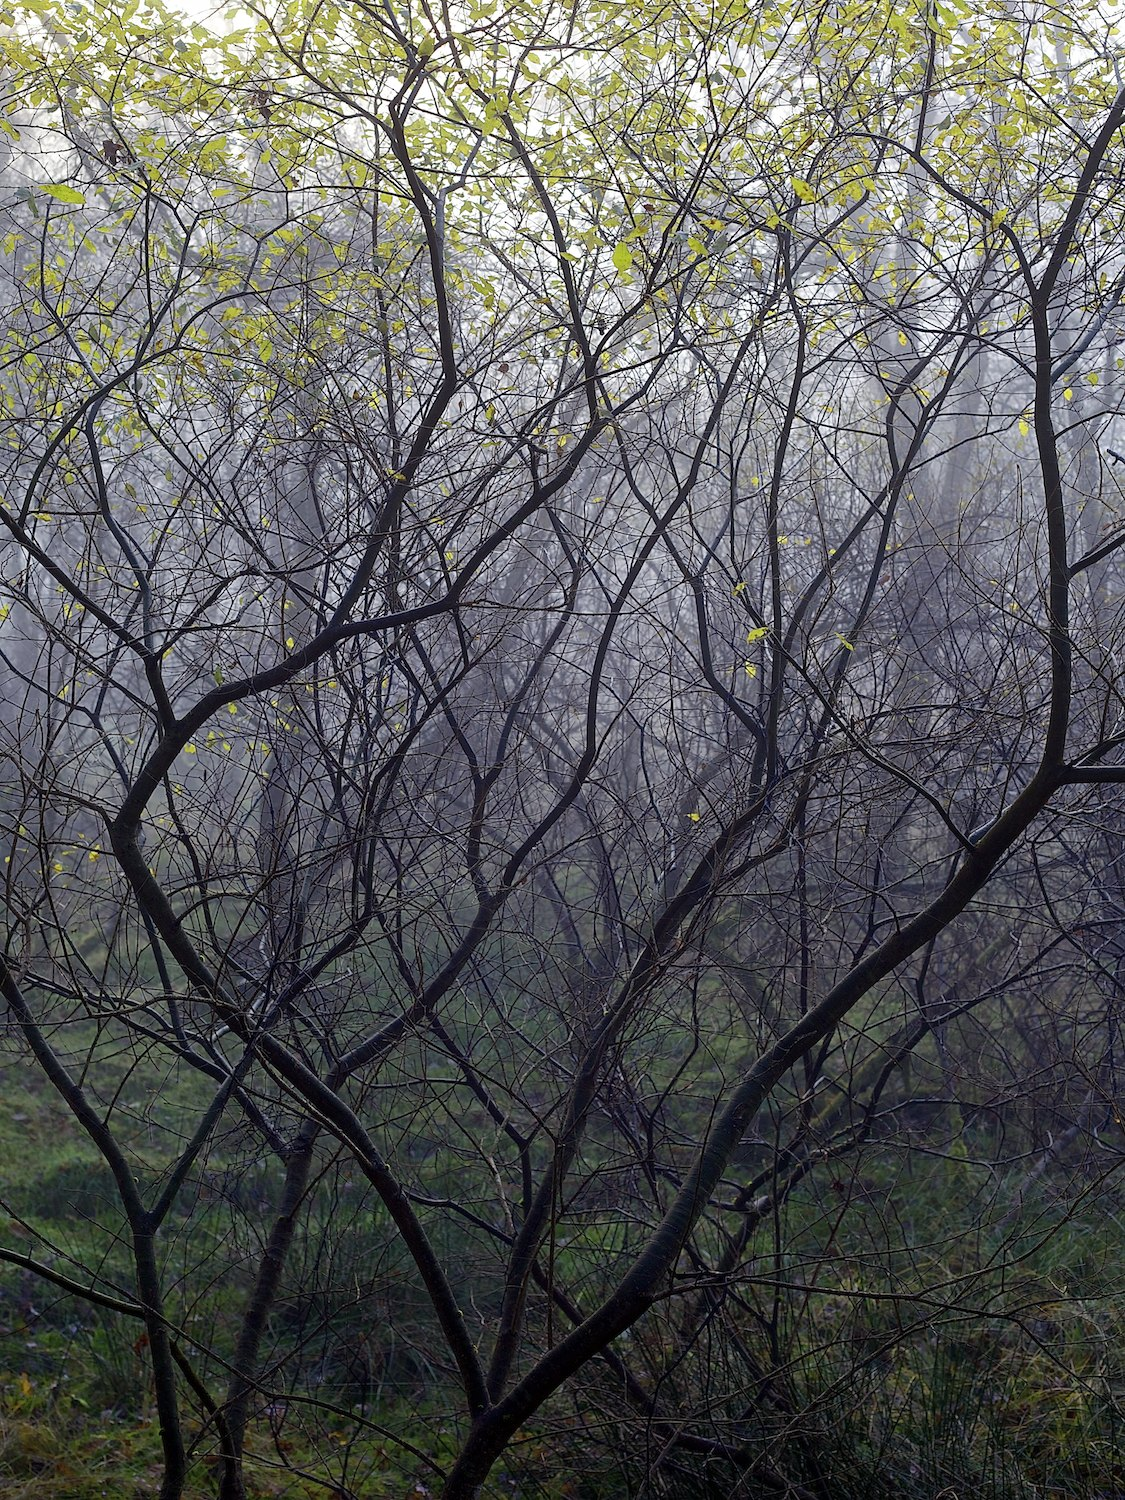 The Misty Heart of The Woods